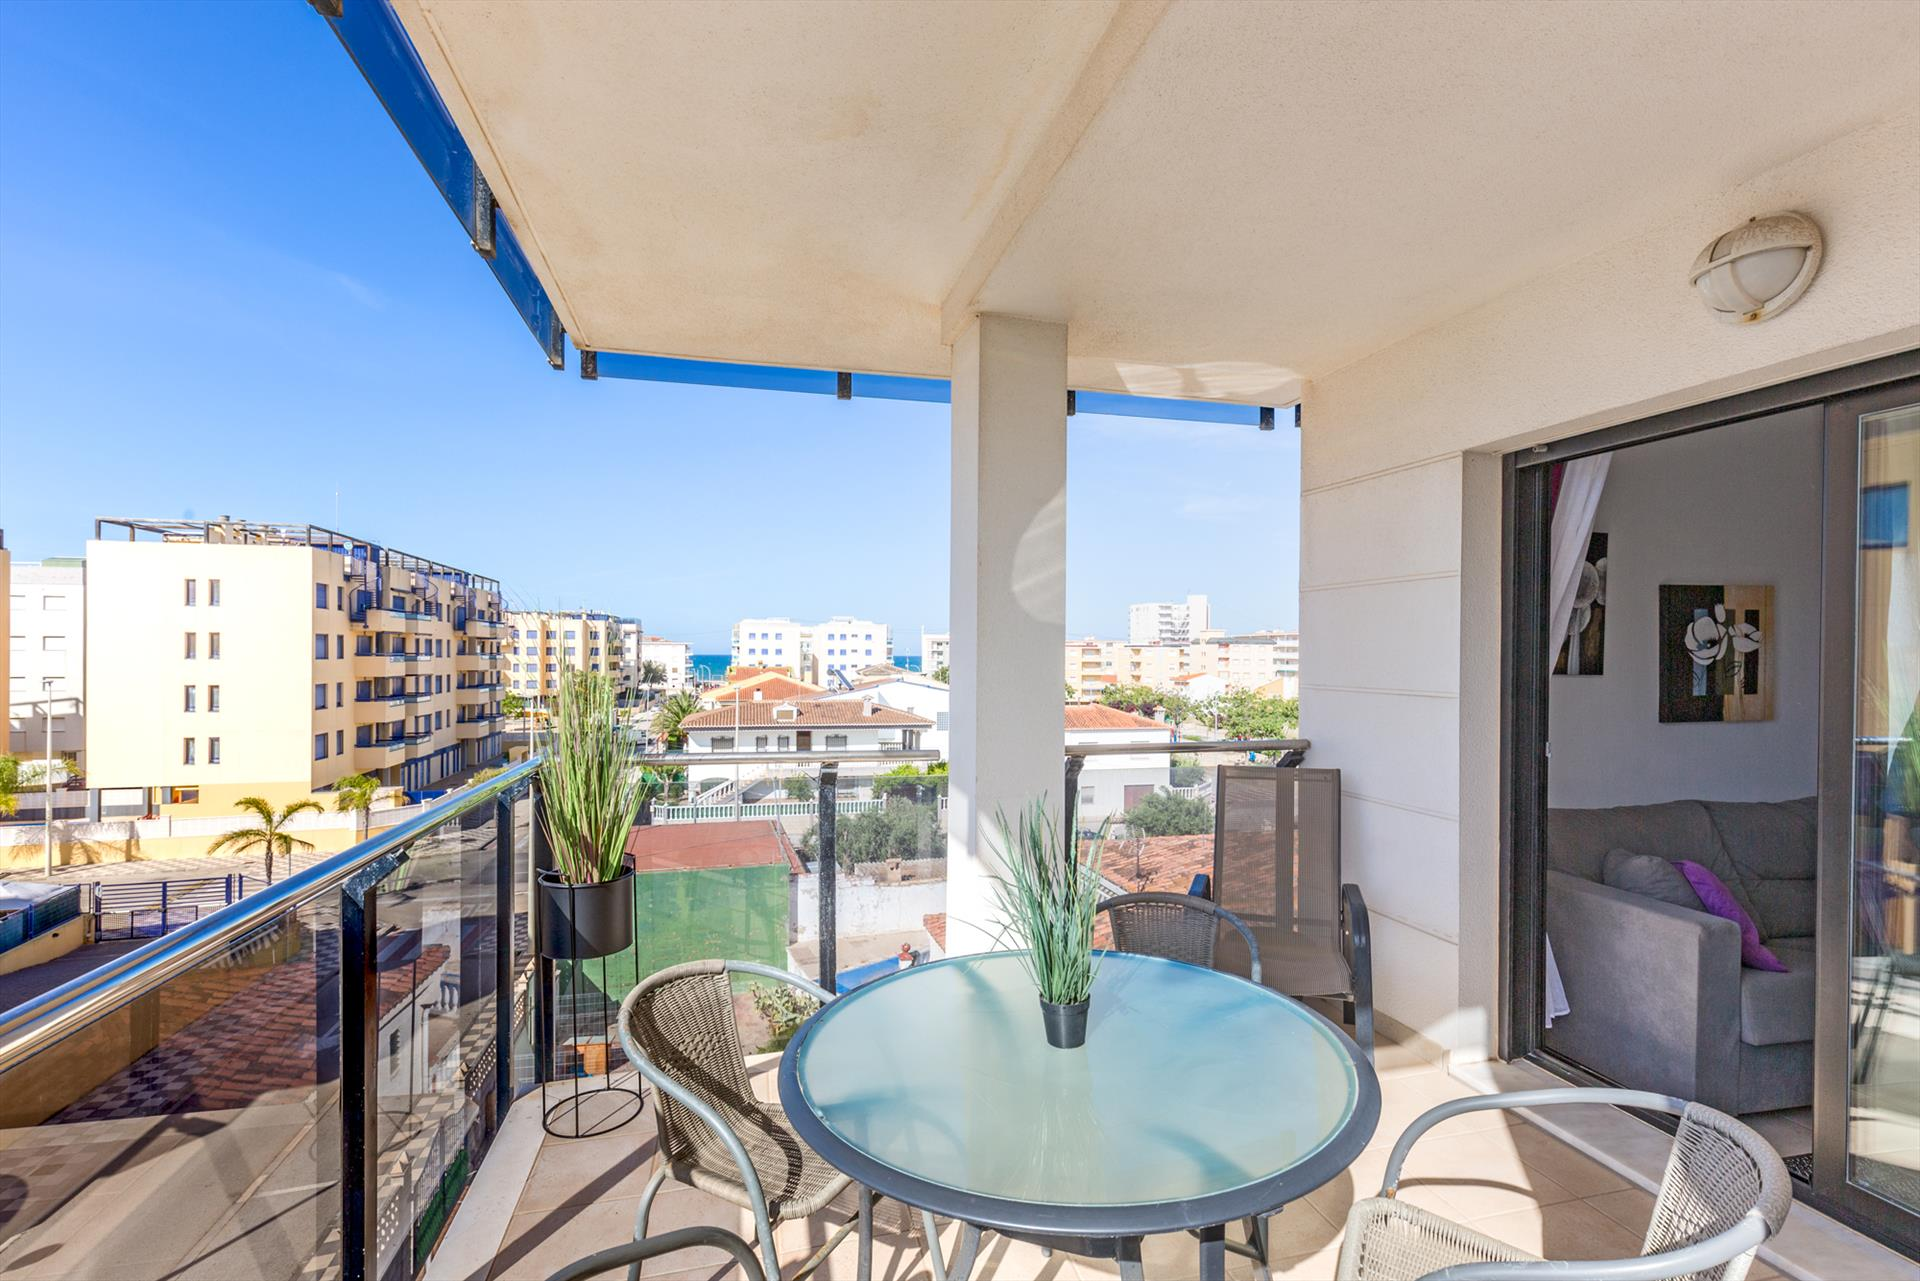 AP12 Migjorn Playa Bellreguard, Wonderful and nice apartment in Bellreguard, on the Costa Blanca, Spain  with communal pool for 6 persons.....